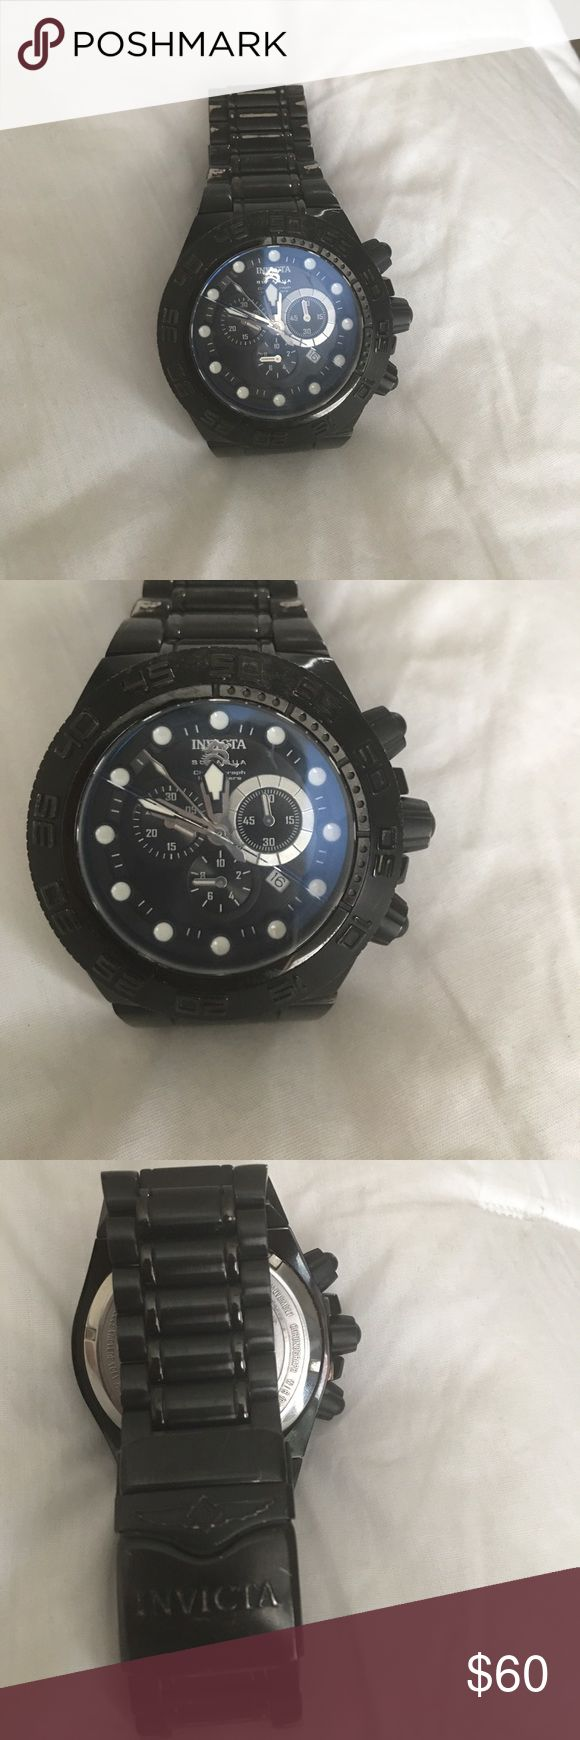 Invicta watch Nice and beautiful men's watch. The band is a little tarnished but not that visible. Also small crack on face Accessories Watches